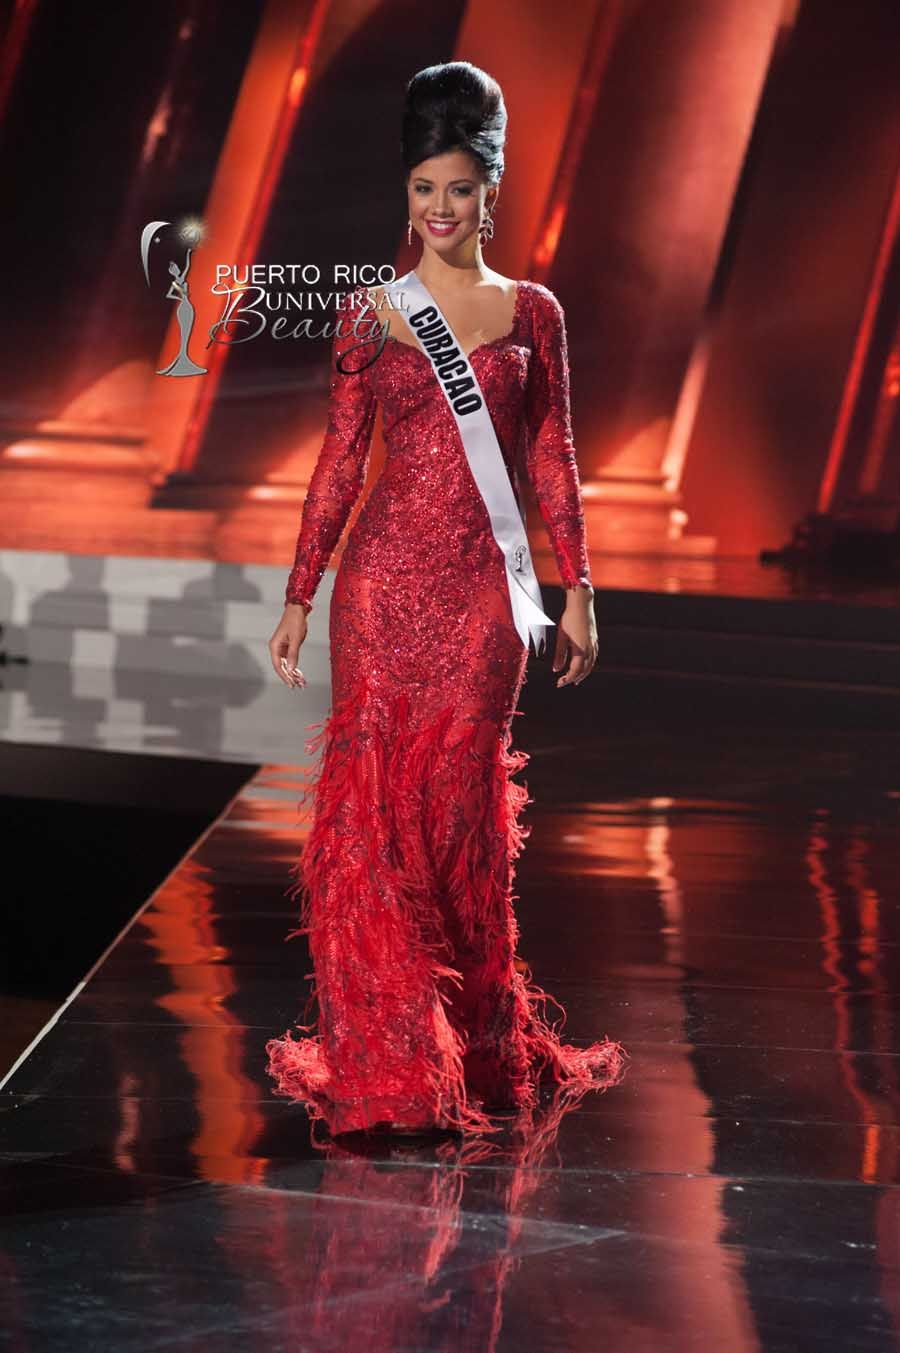 MISS UNIVERSE 2015 :: PRELIMINARY EVENING GOWN COMPETITION